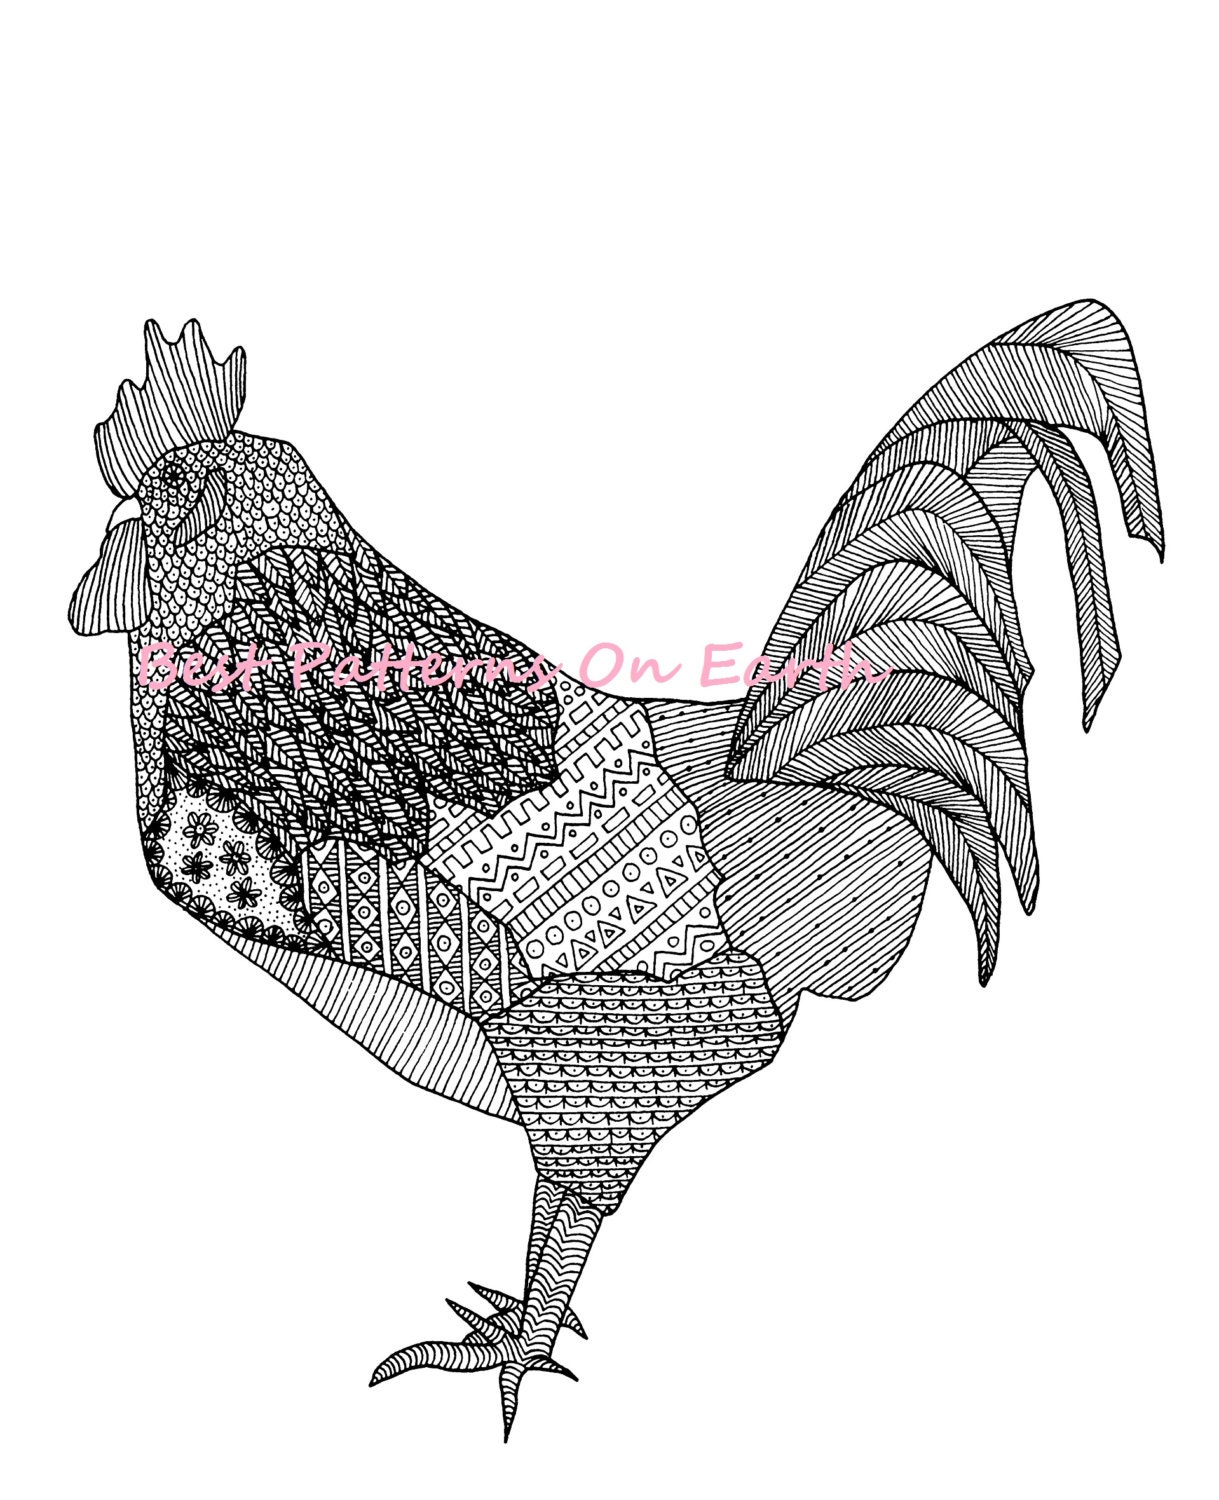 Zen colouring book animals - Rooster Coloring Page Zen Rooster Zendoodle Feathers Adult Coloring Pages Kids Coloring Book Pdf